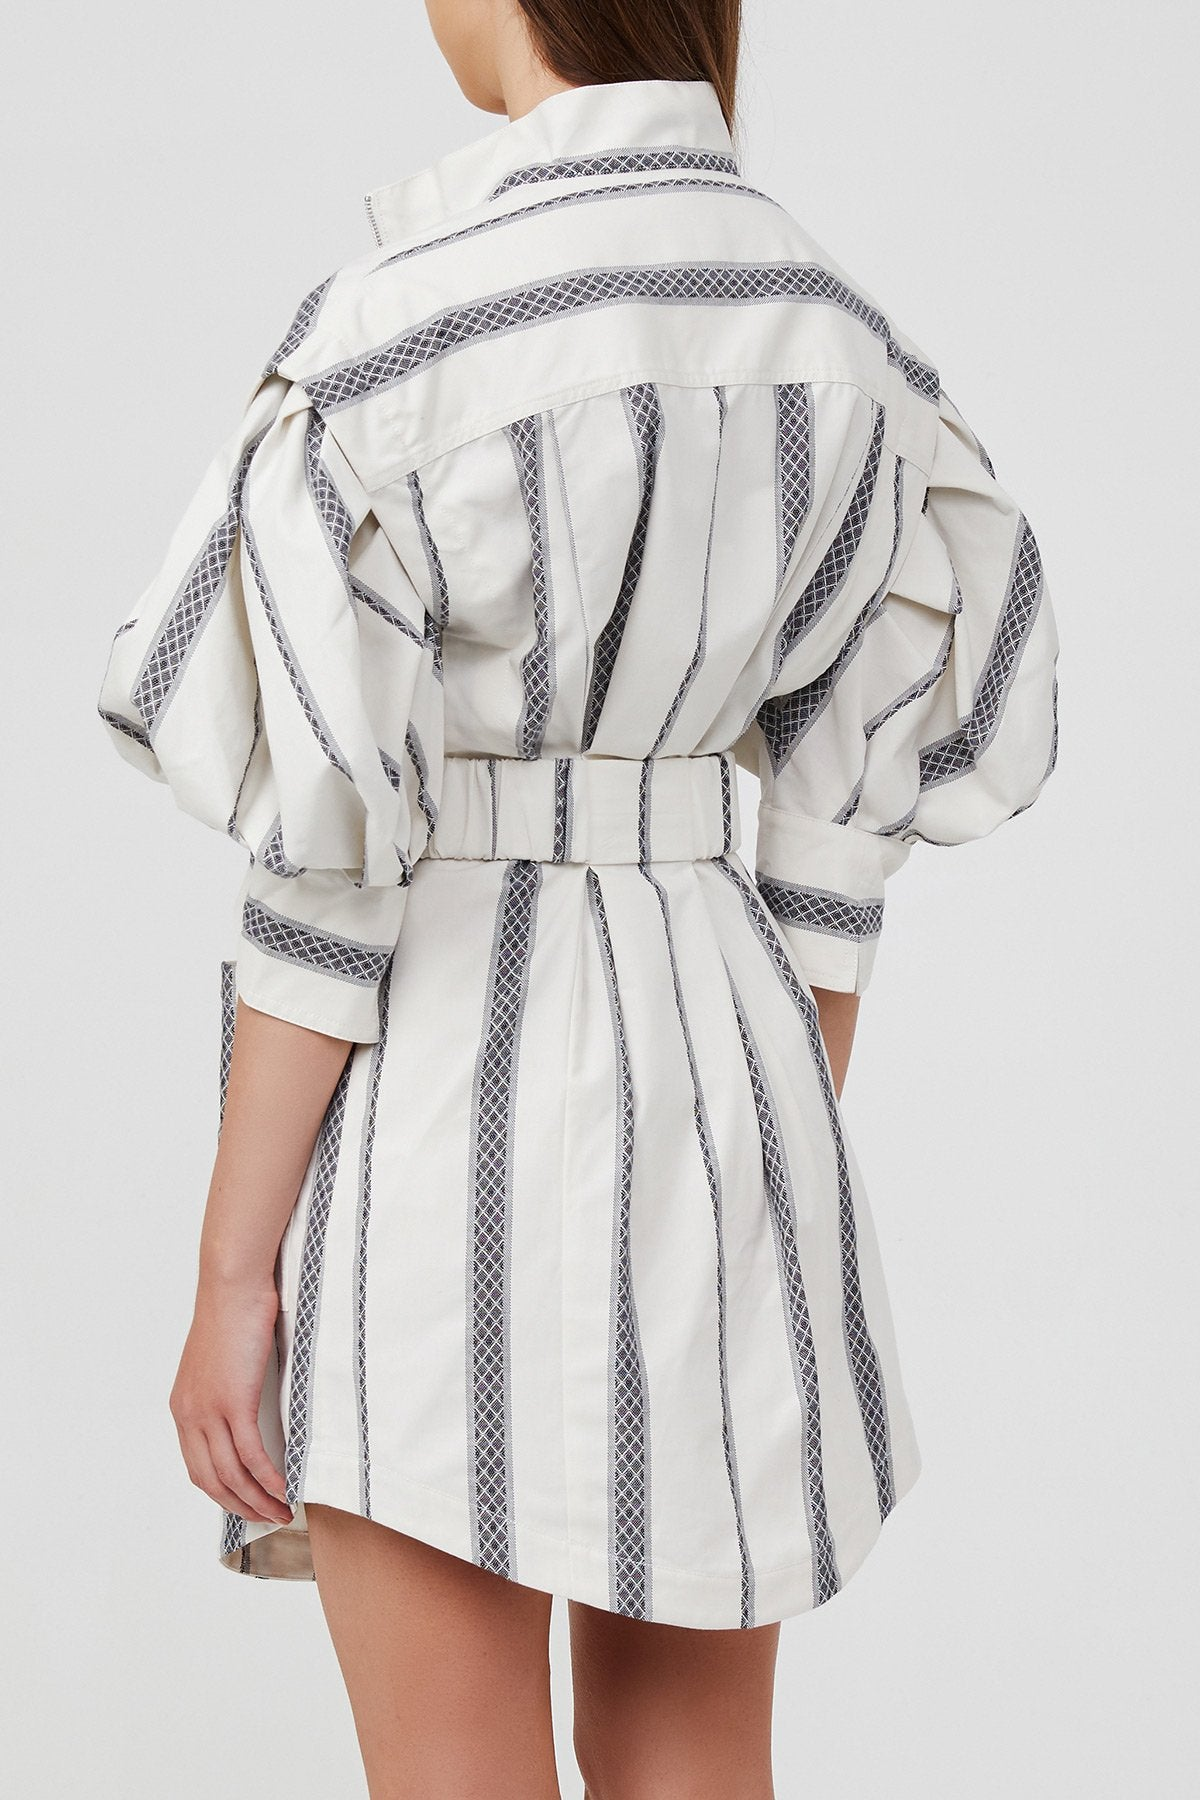 Acler | Kingsway Dress - Ink Stripe